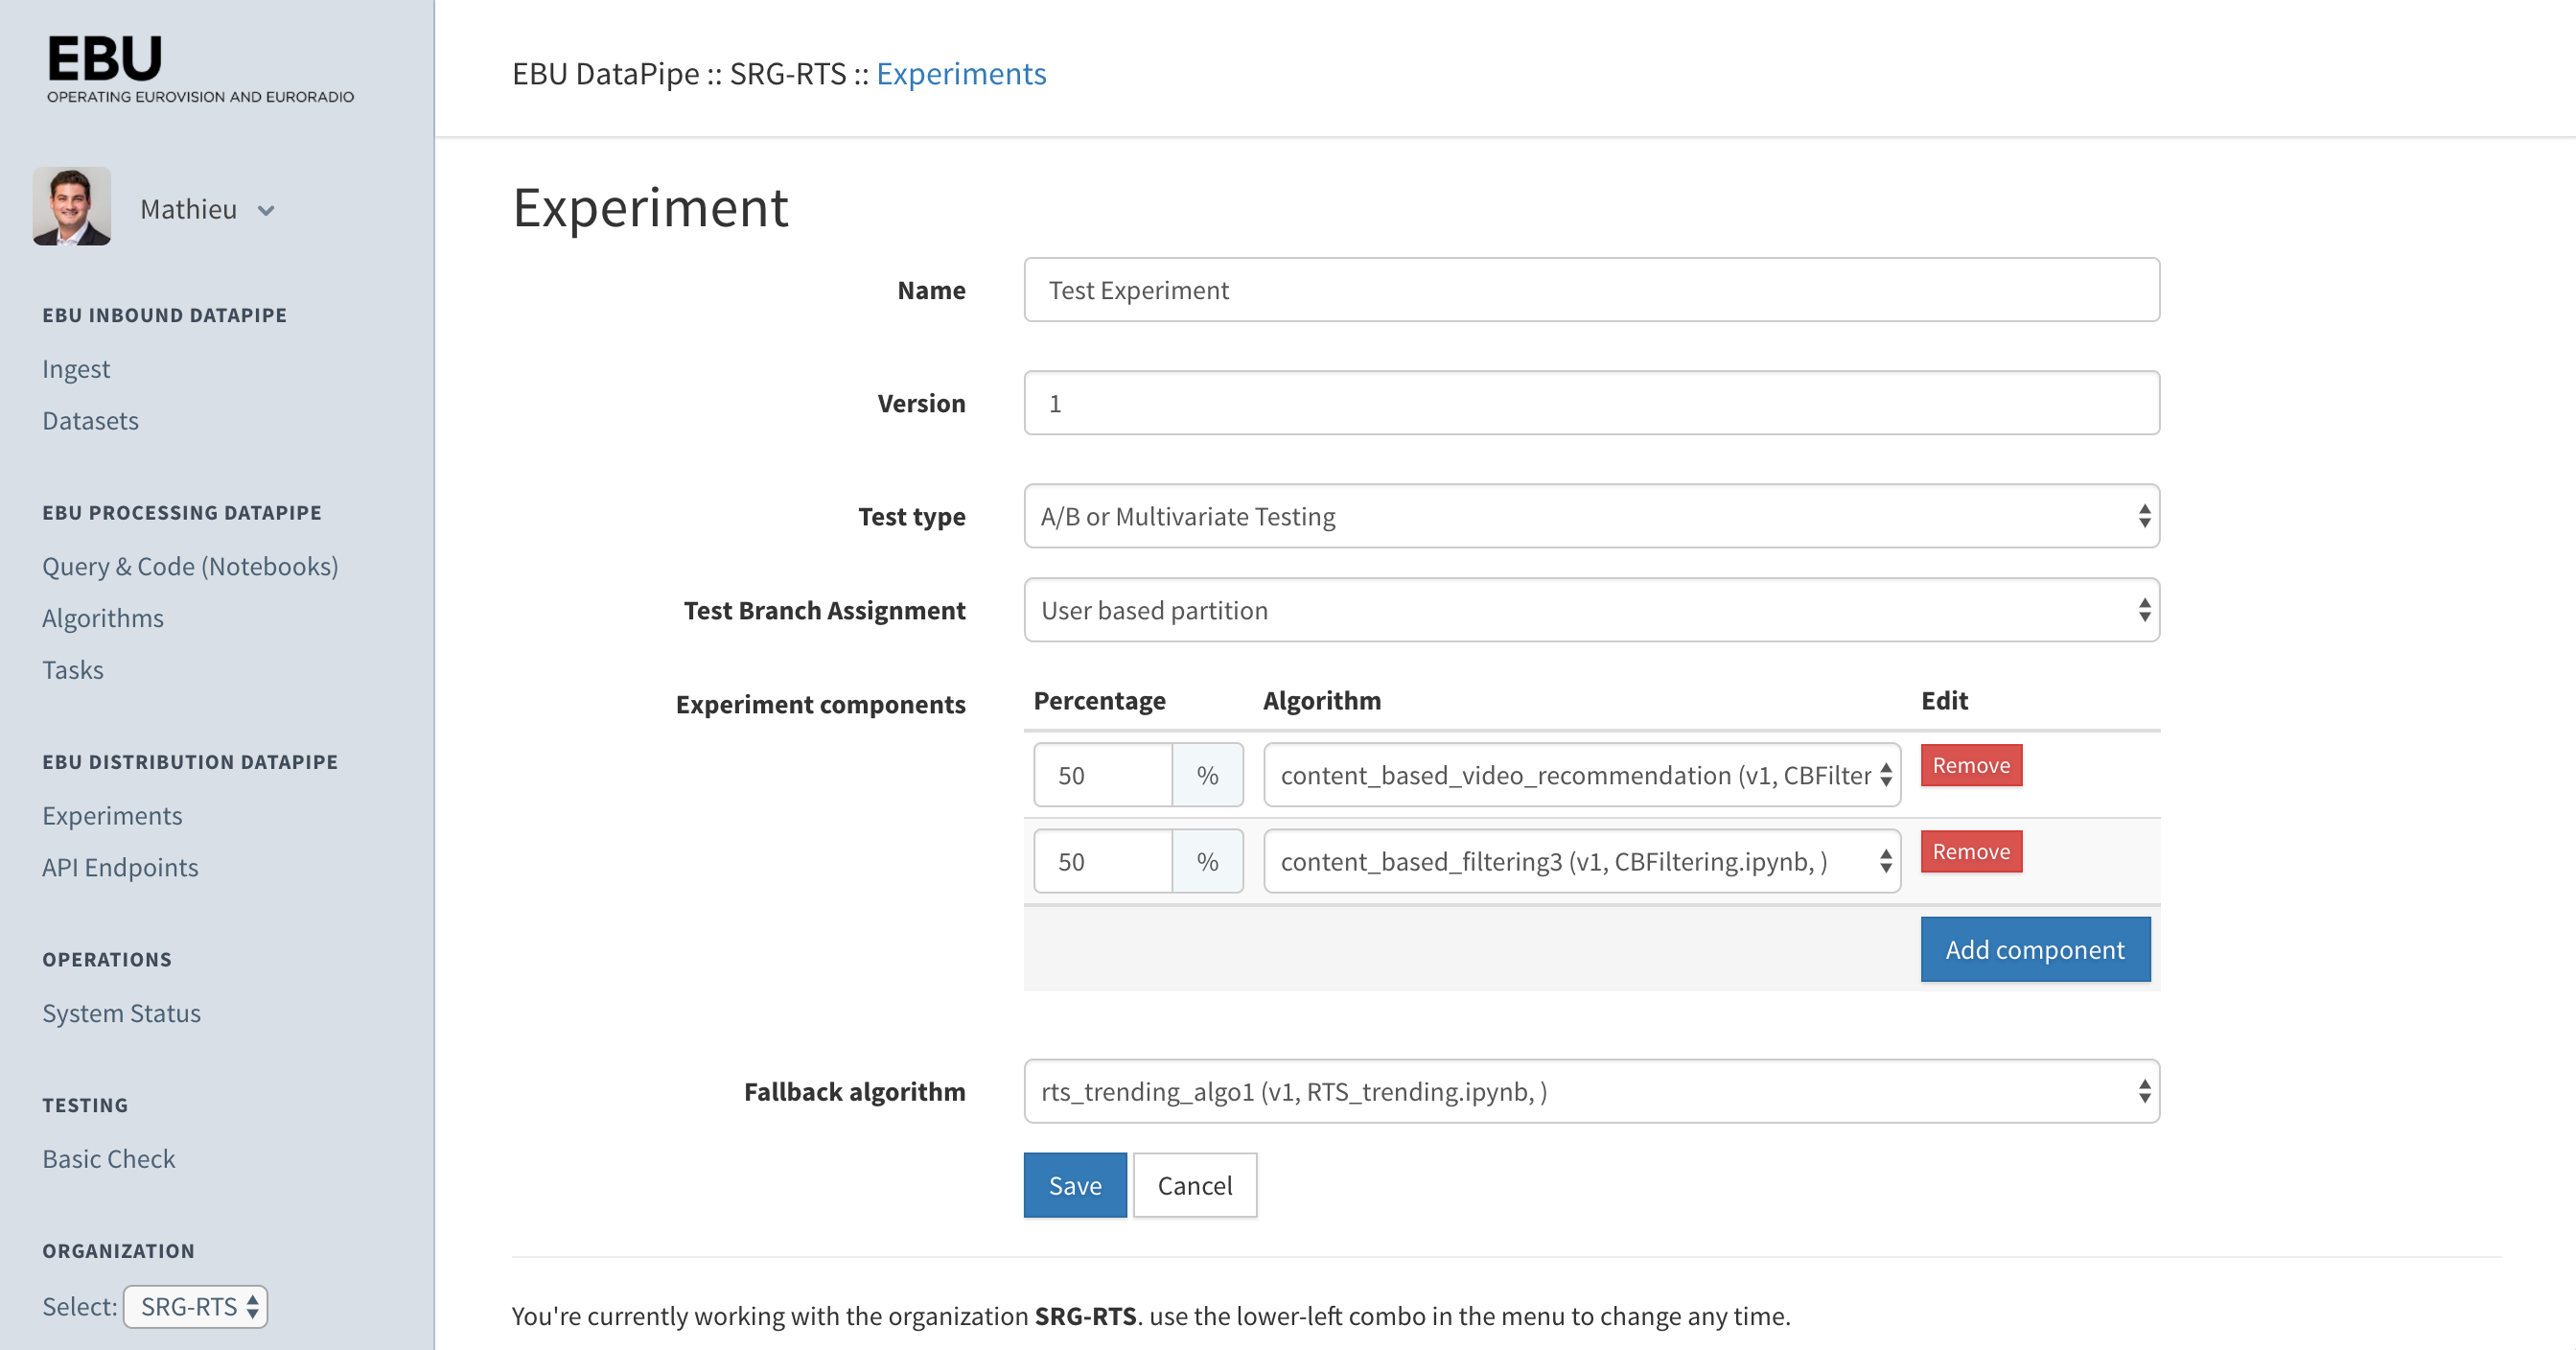 Manager Options on Experiments